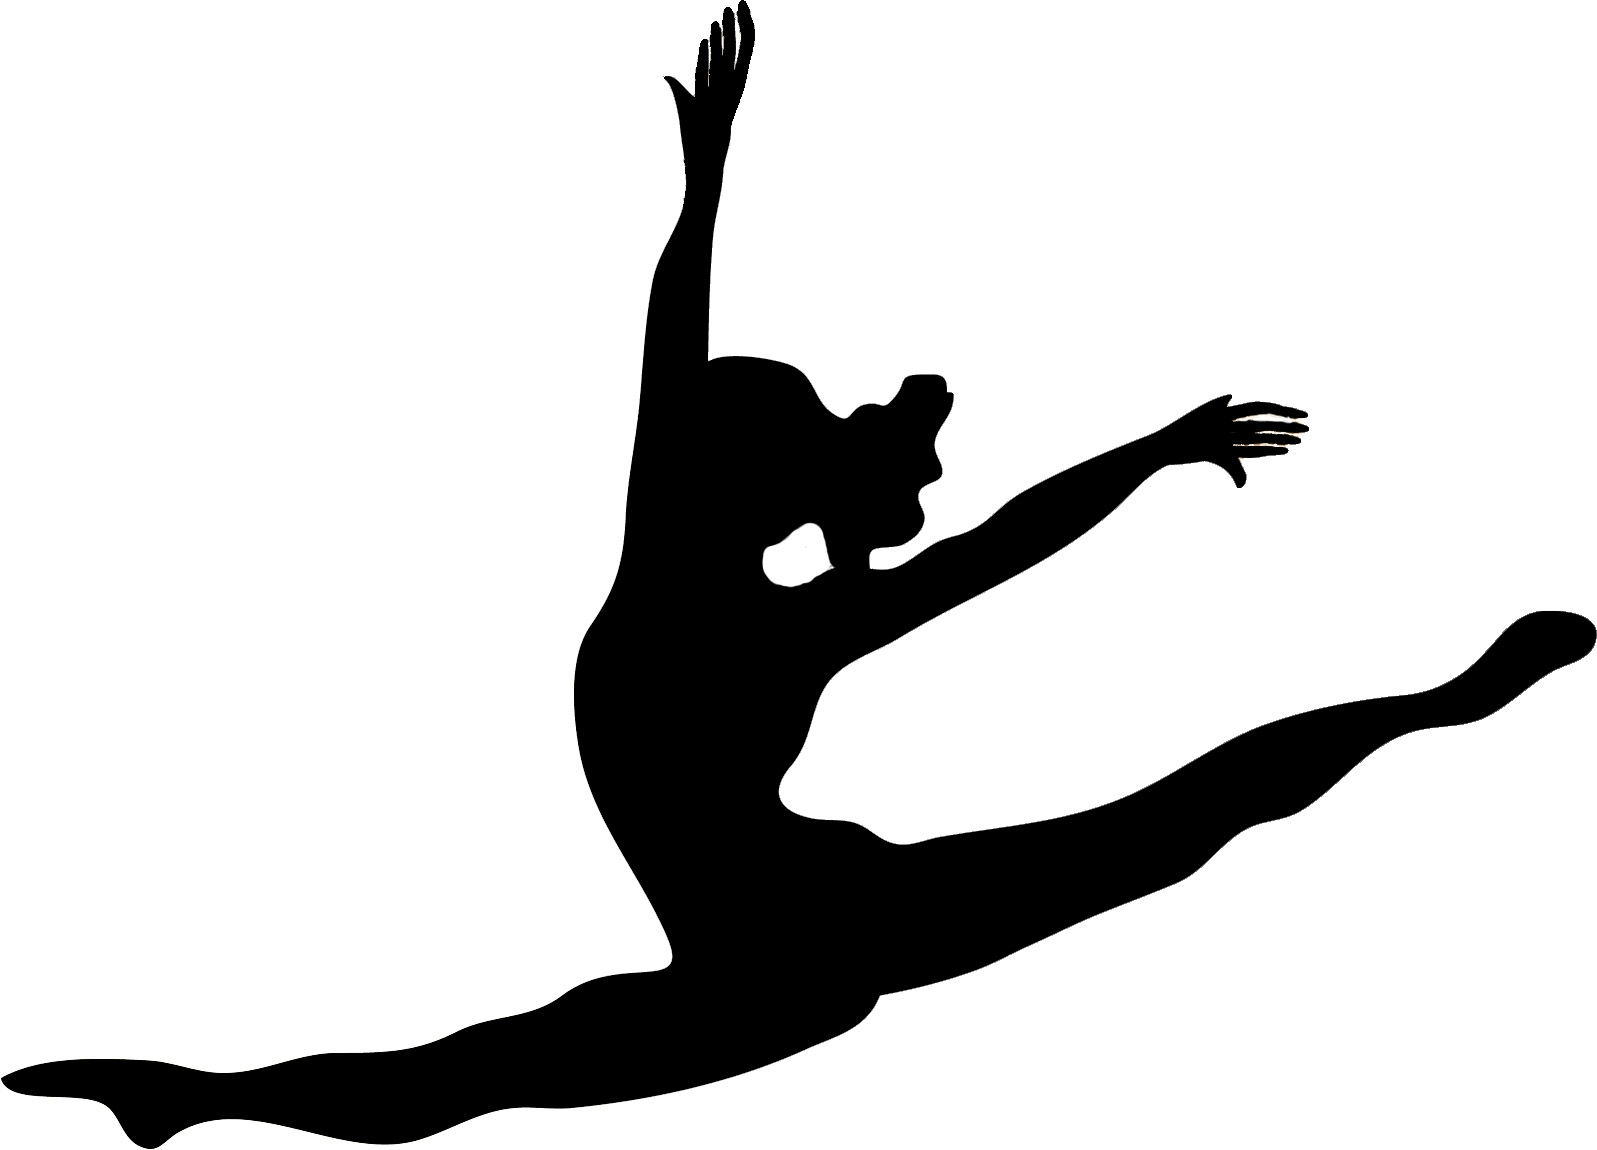 Free Lyrical Dancing Cliparts, Download Free Clip Art, Free Clip Art.